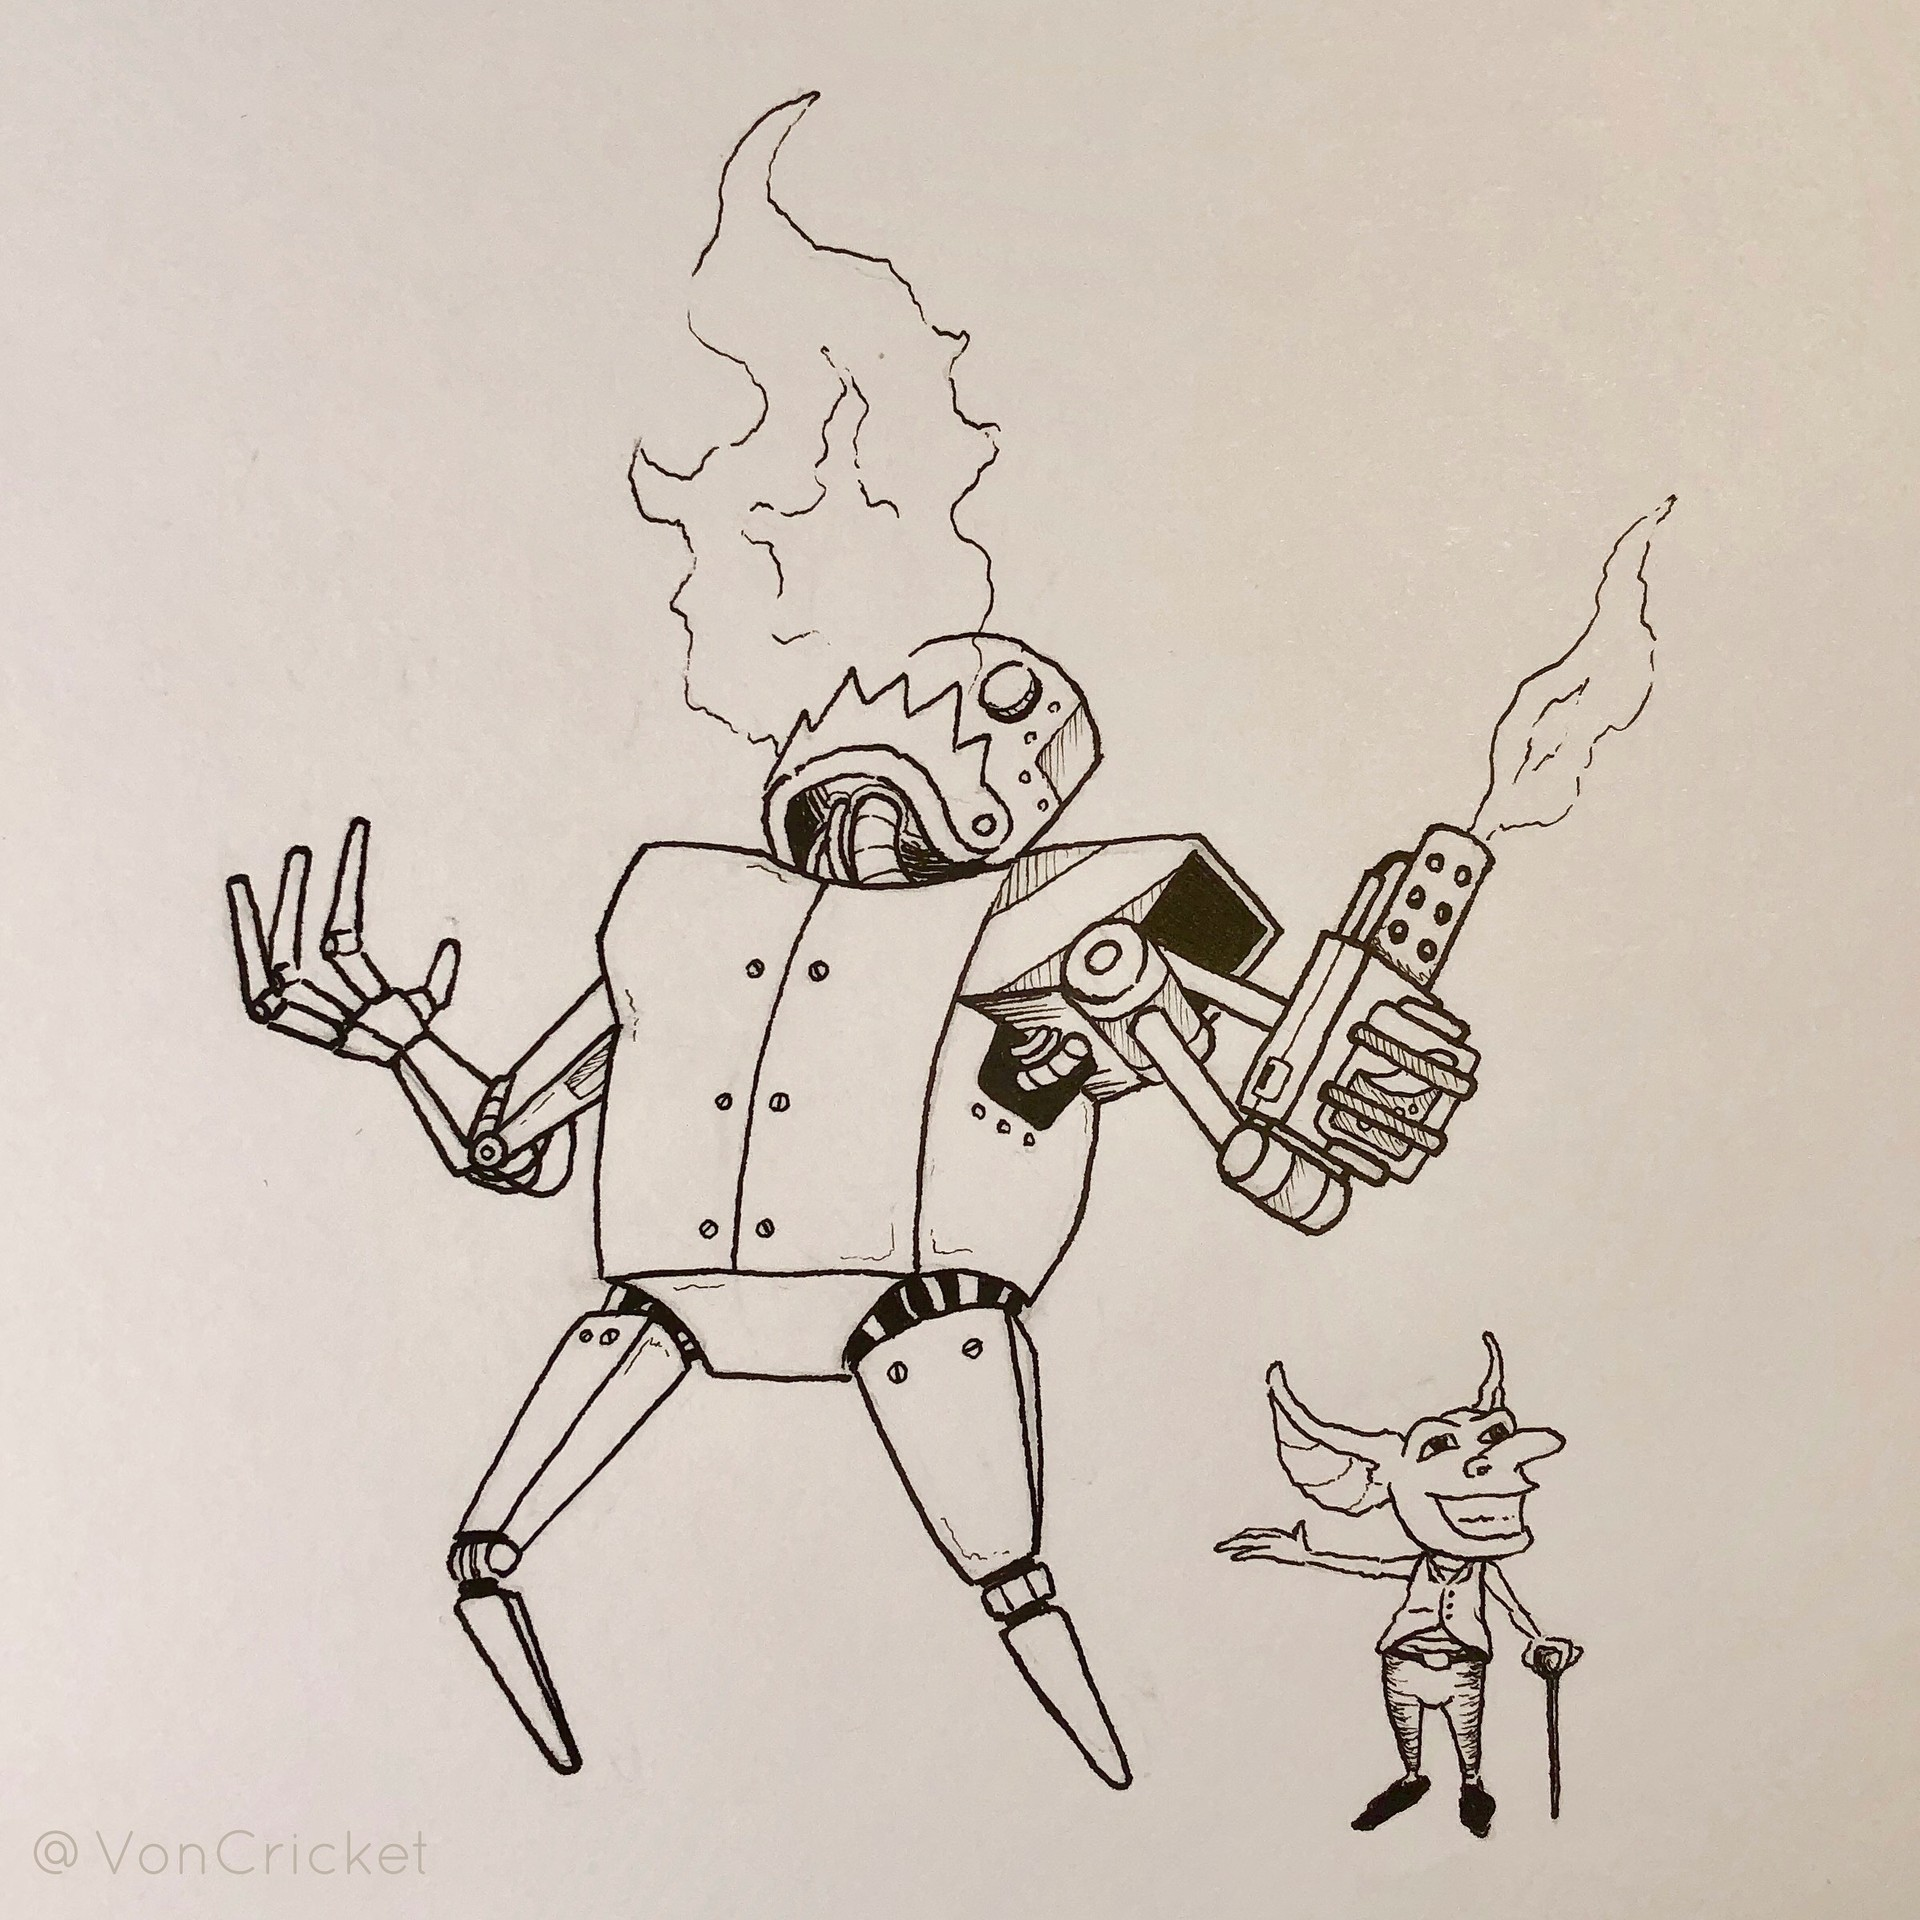 Inktober Day 3 - Roasted 